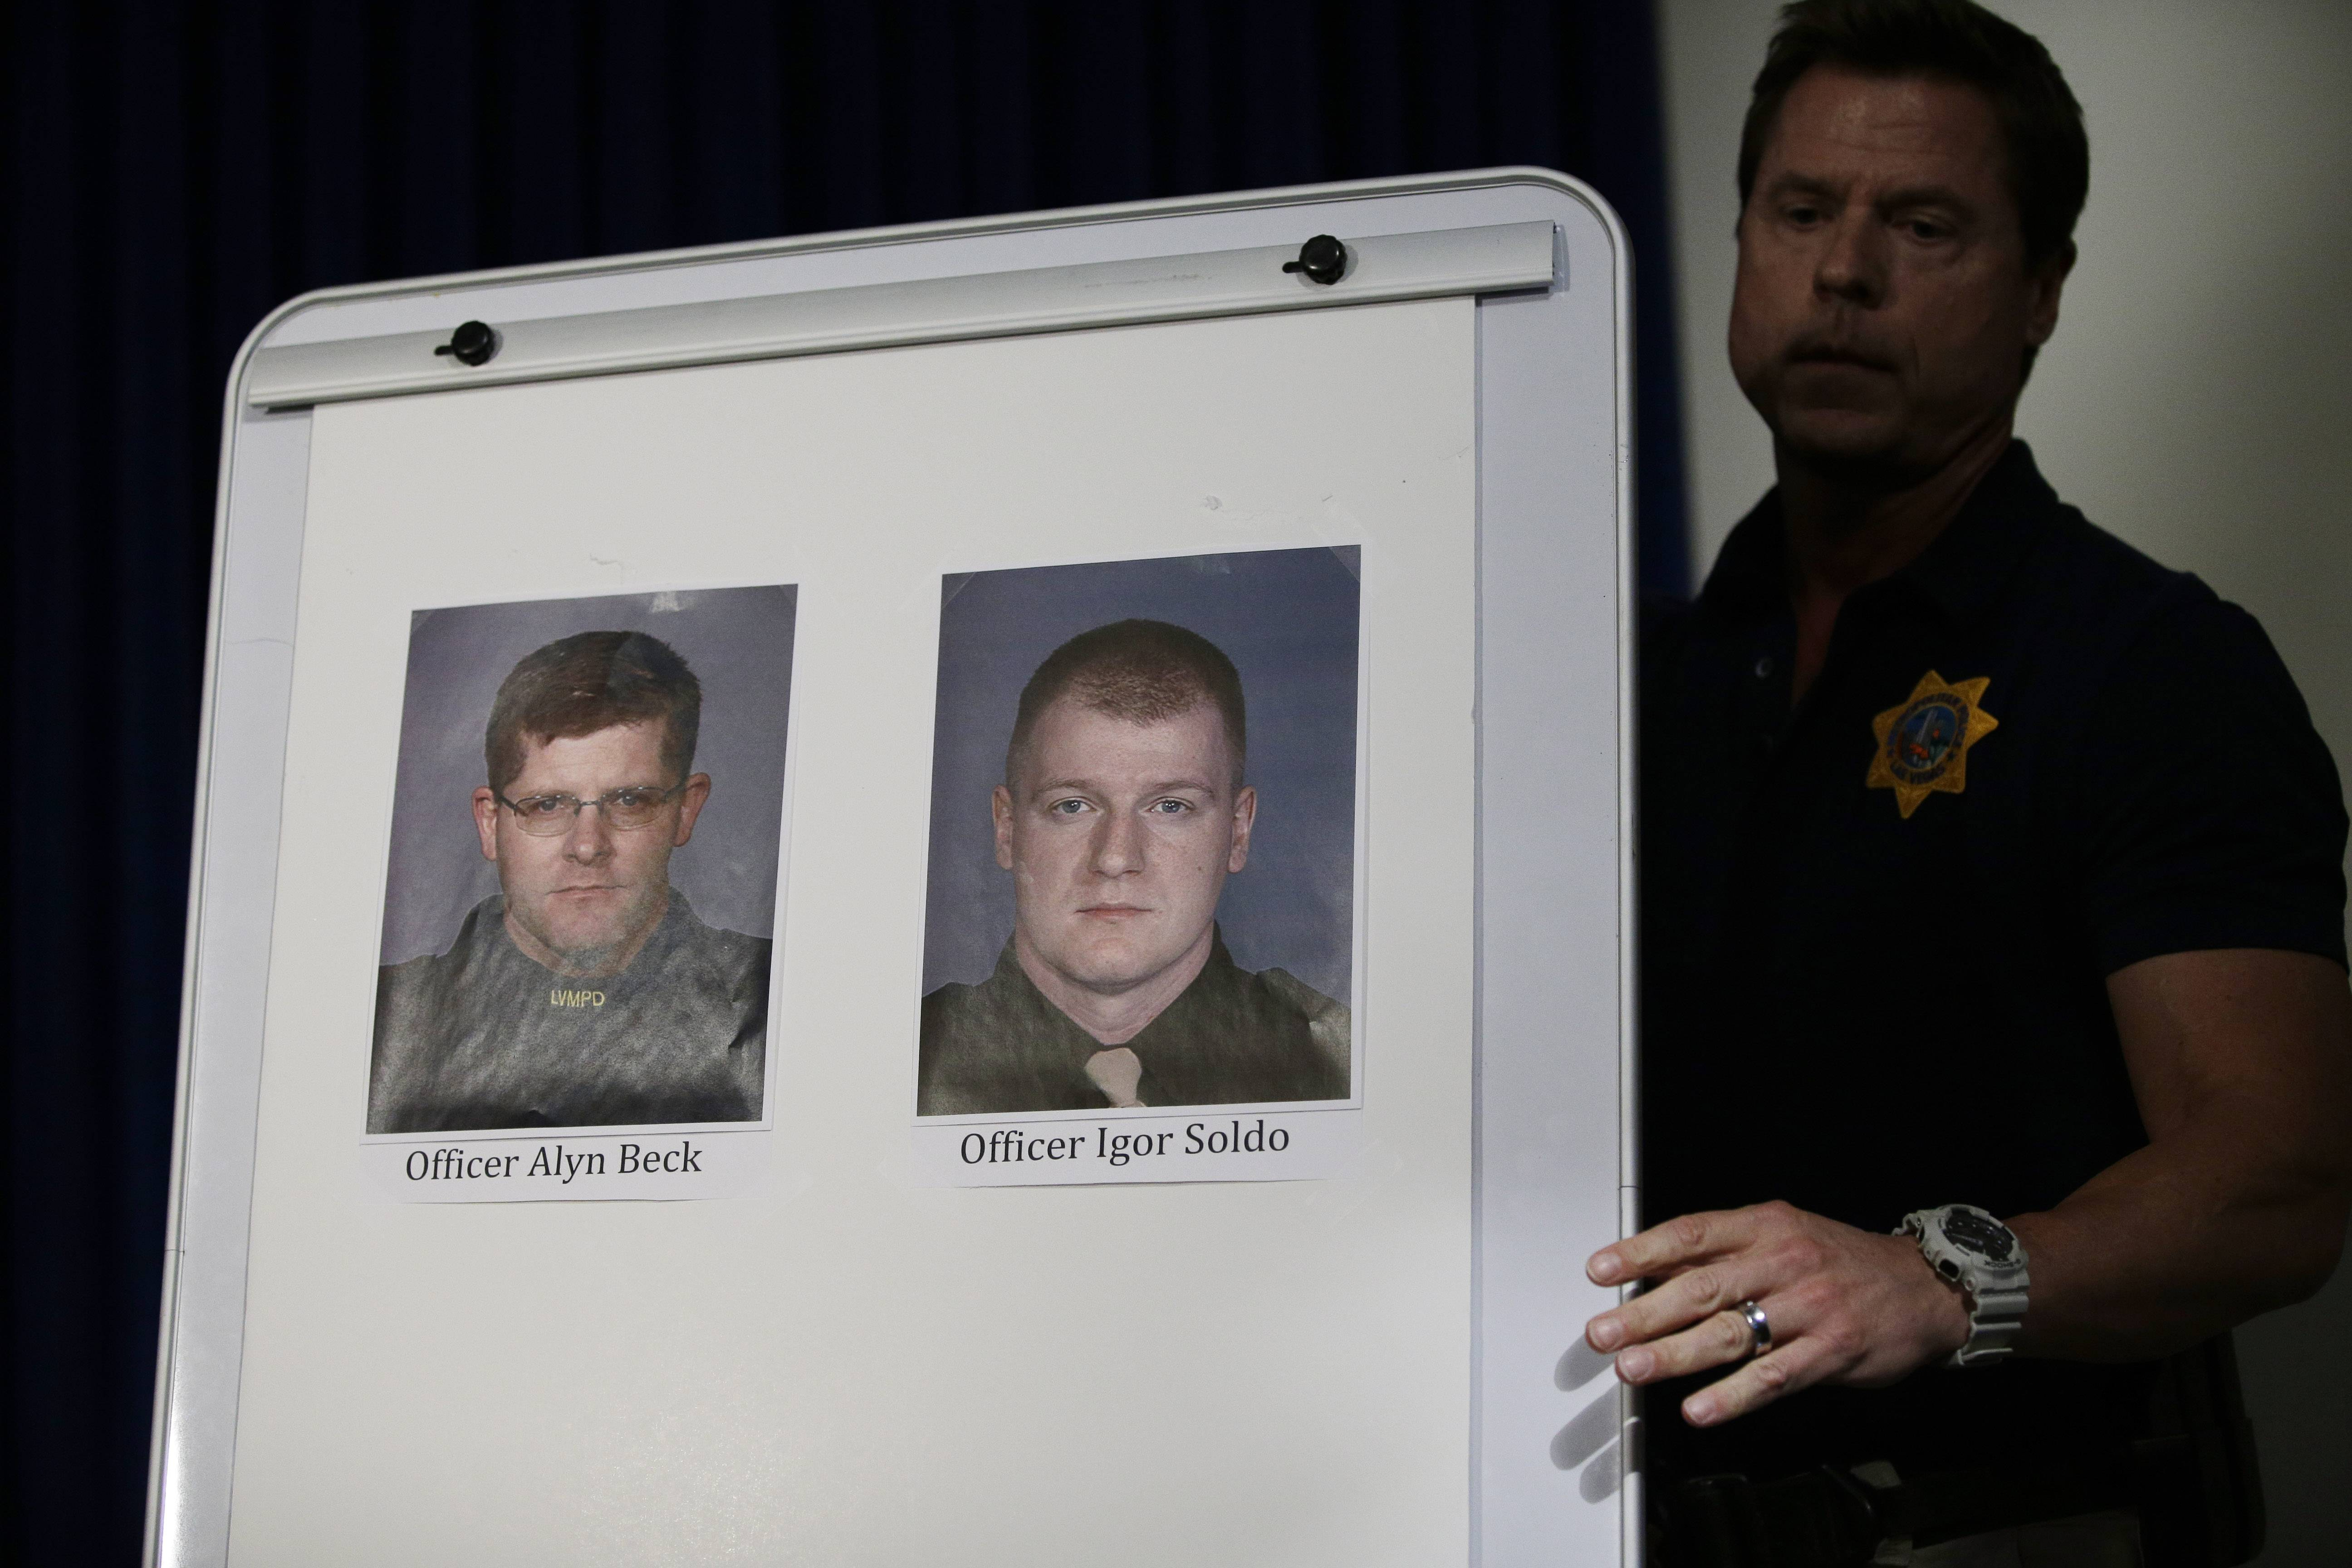 Pictures of Las Vegas Metropolitan Police Officers Alyn Beck, left, and Igor Soldo are seen at a news conference Sunday, June 8, 2014 in Las Vegas. The two officers were killed in an ambush while eating lunch.